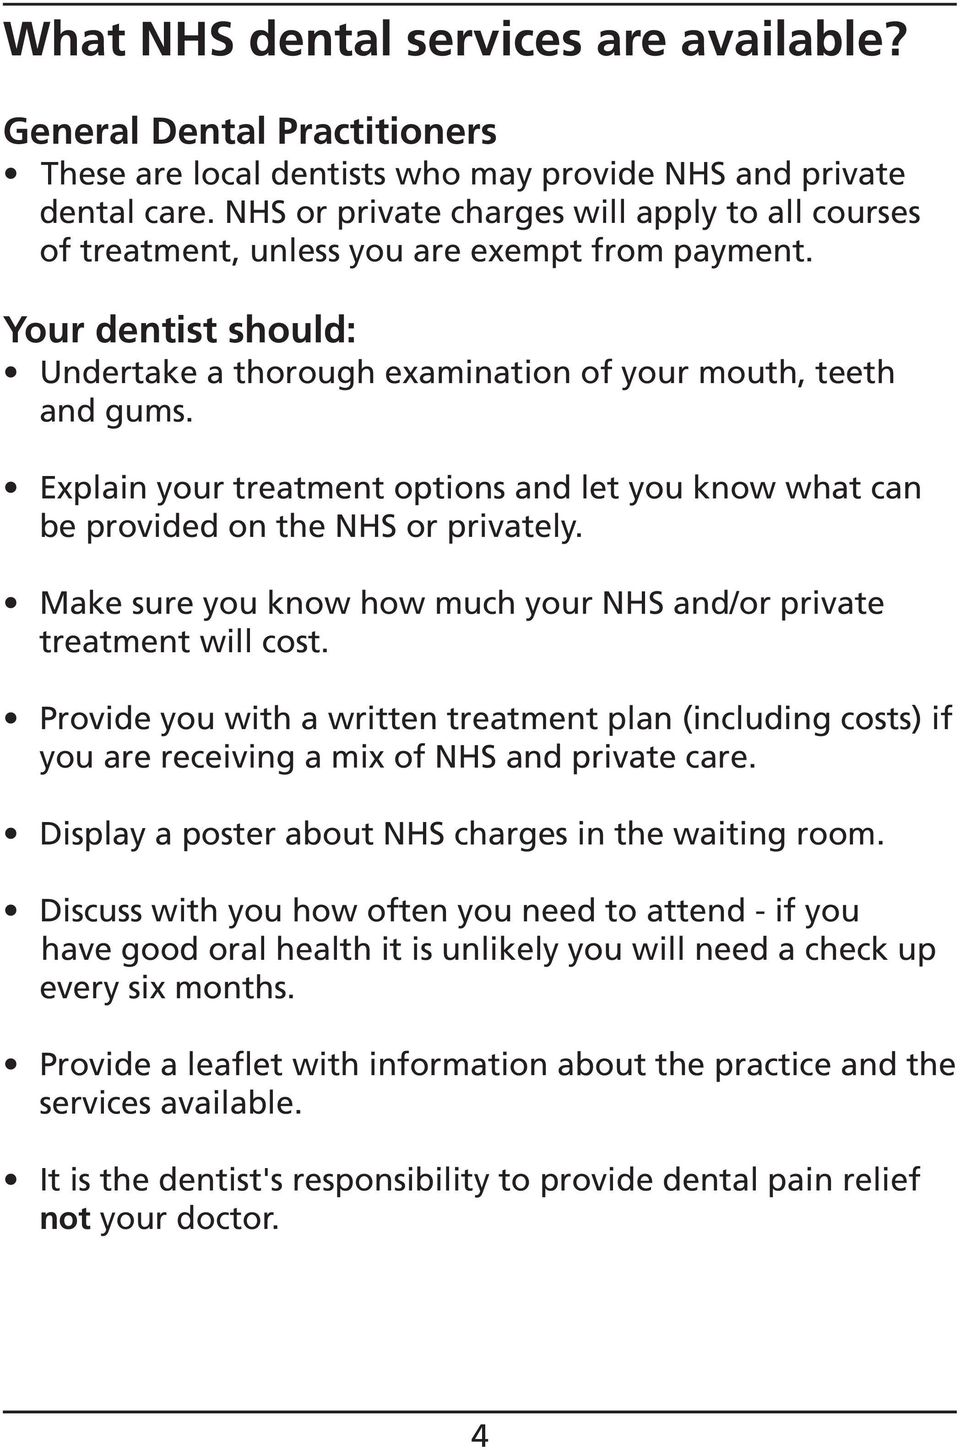 Explain your treatment options and let you know what can be provided on the NHS or privately. Make sure you know how much your NHS and/or private treatment will cost.